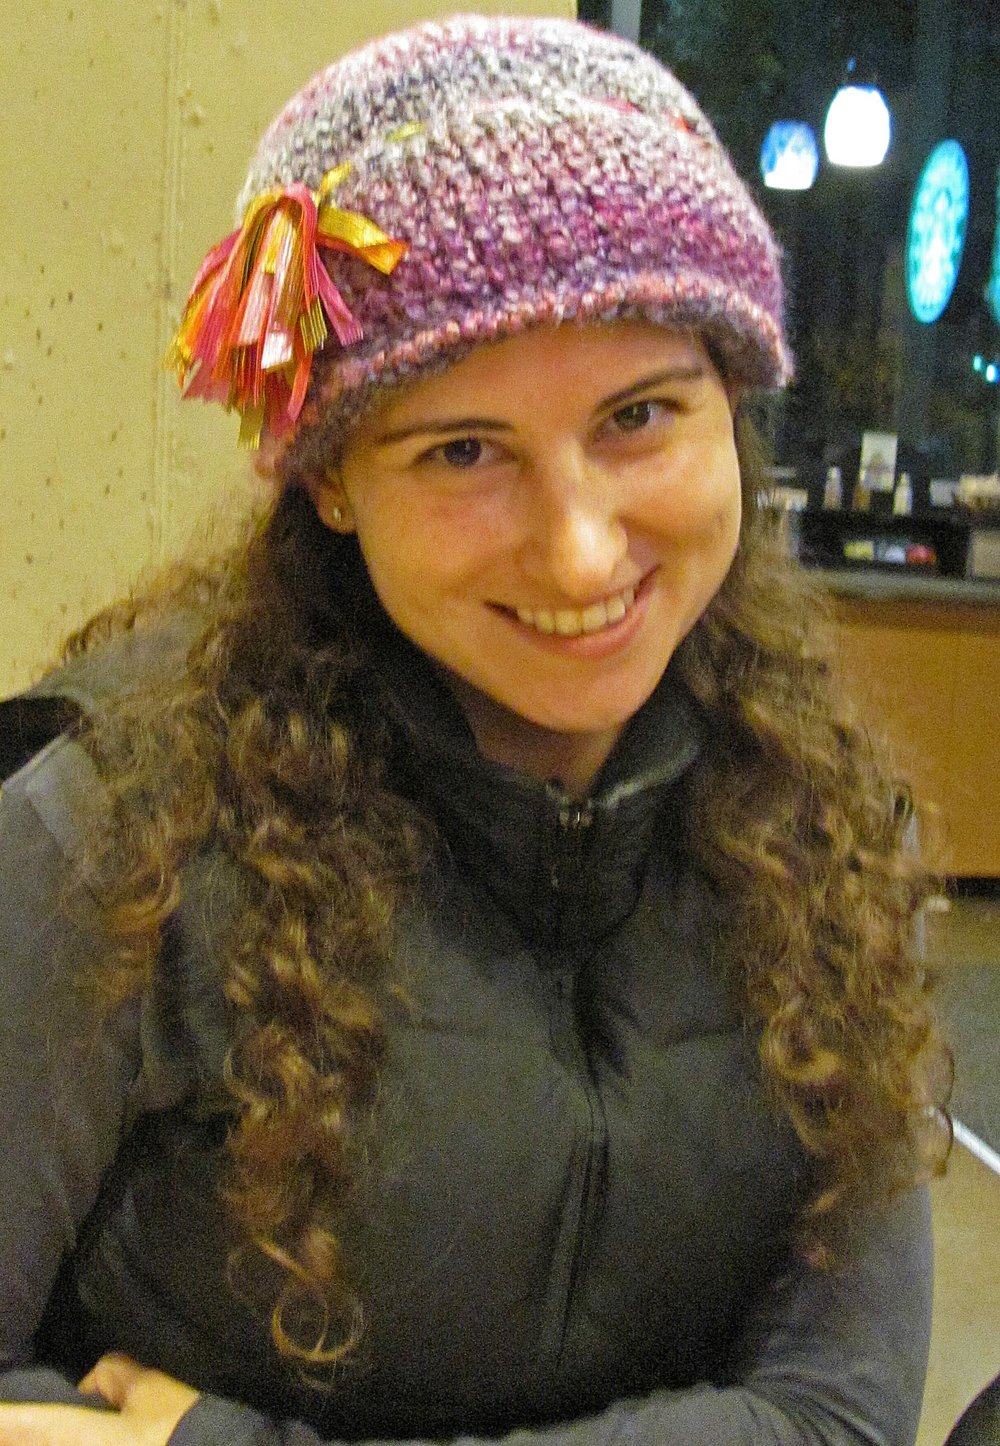 fall 2011 - me and my favorite hat, which sparked letting my hair down again